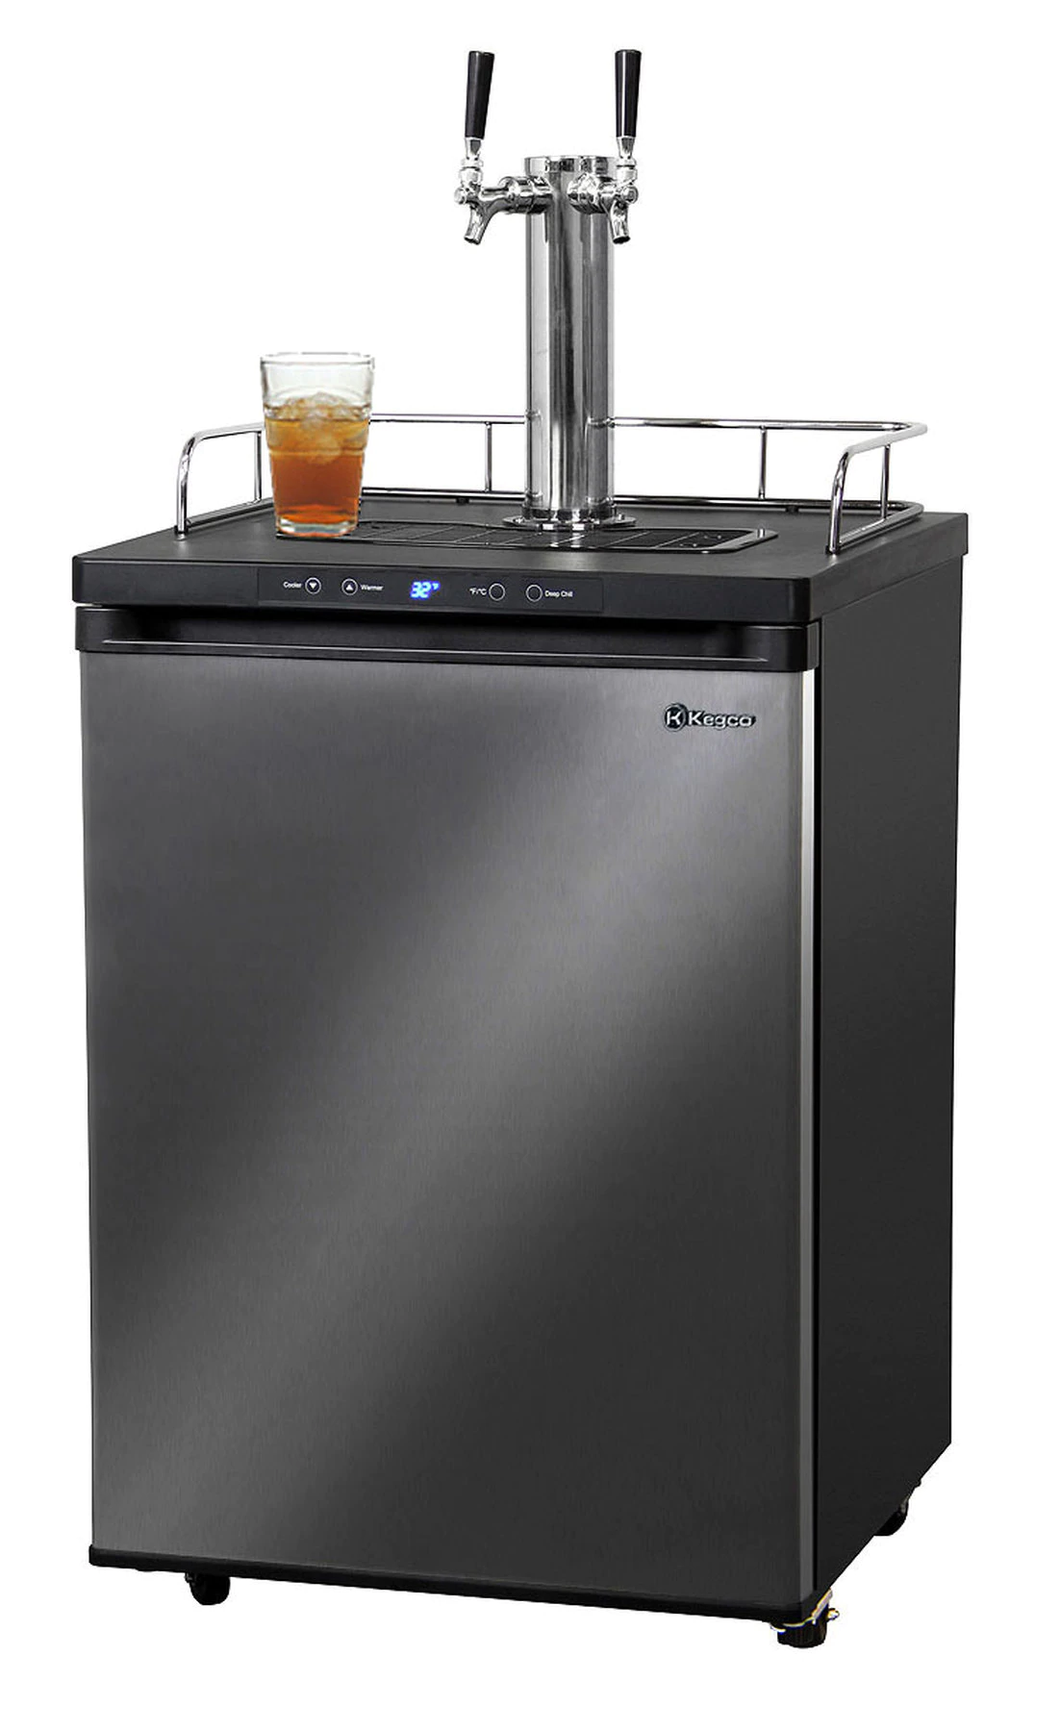 DUAL FAUCET DIGITAL KOMBUCHARATOR KOMBUCHA KEG DISPENSER